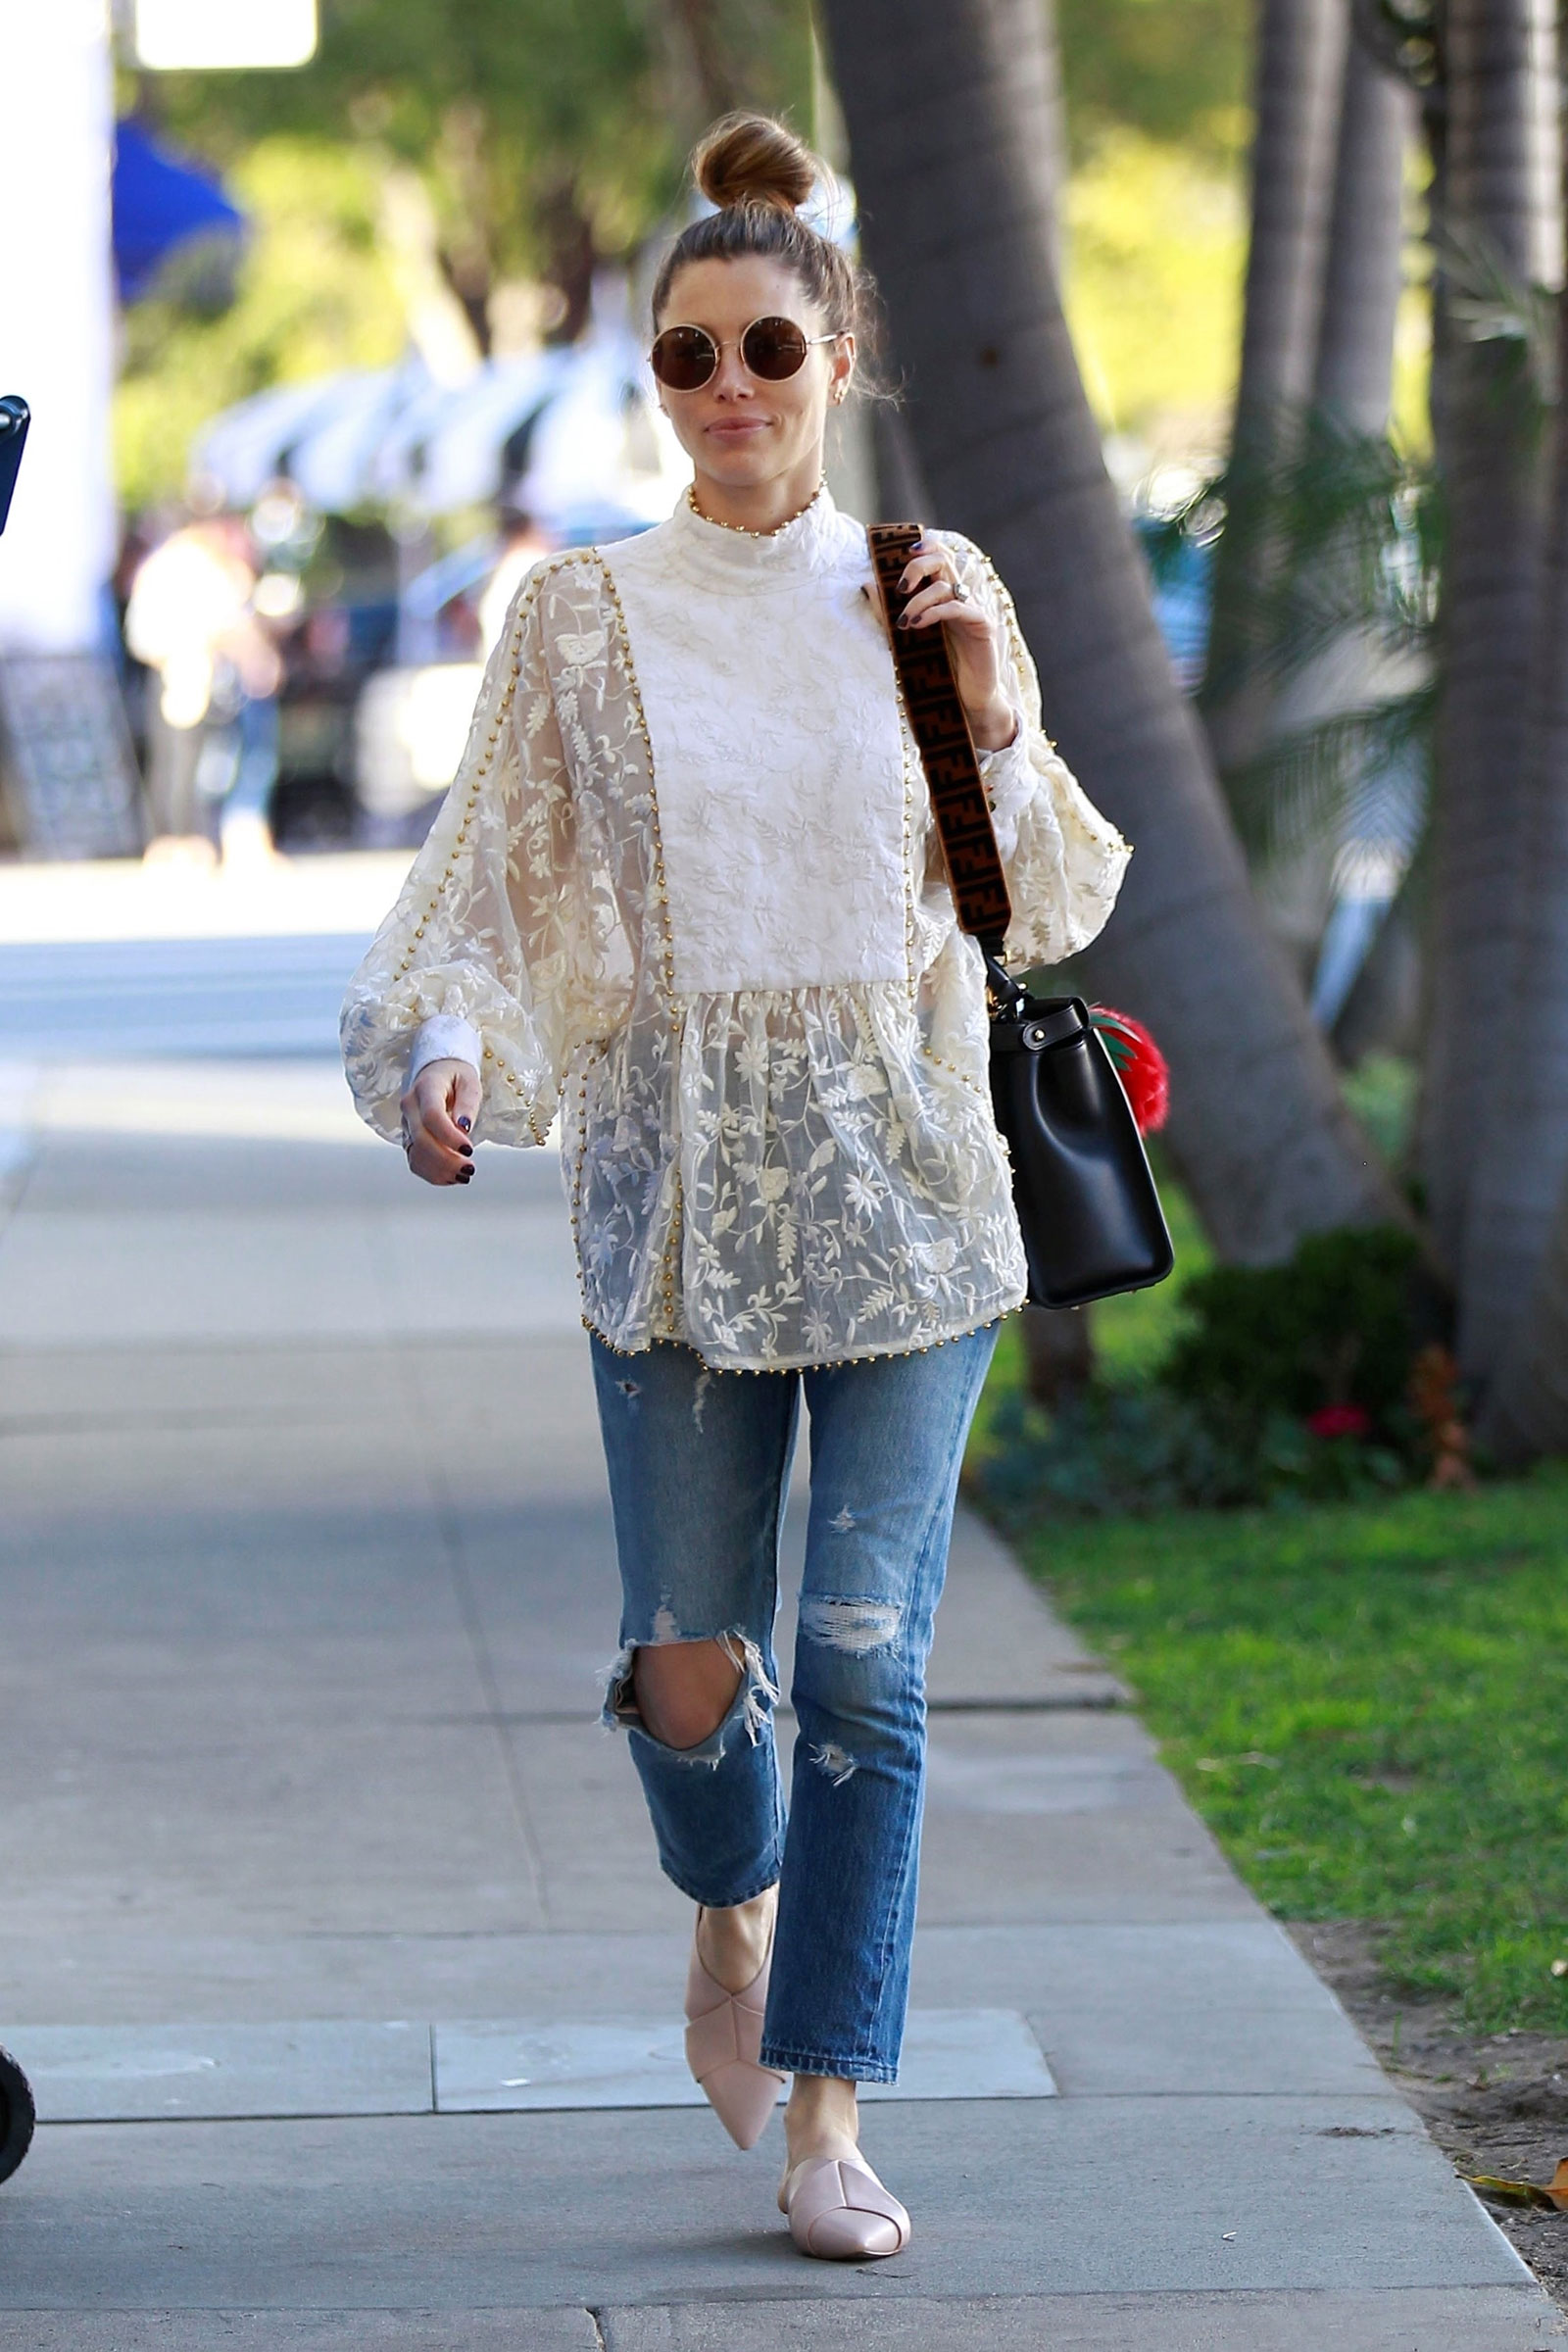 Jessica Biel's lace blouse and pointy mules look for less